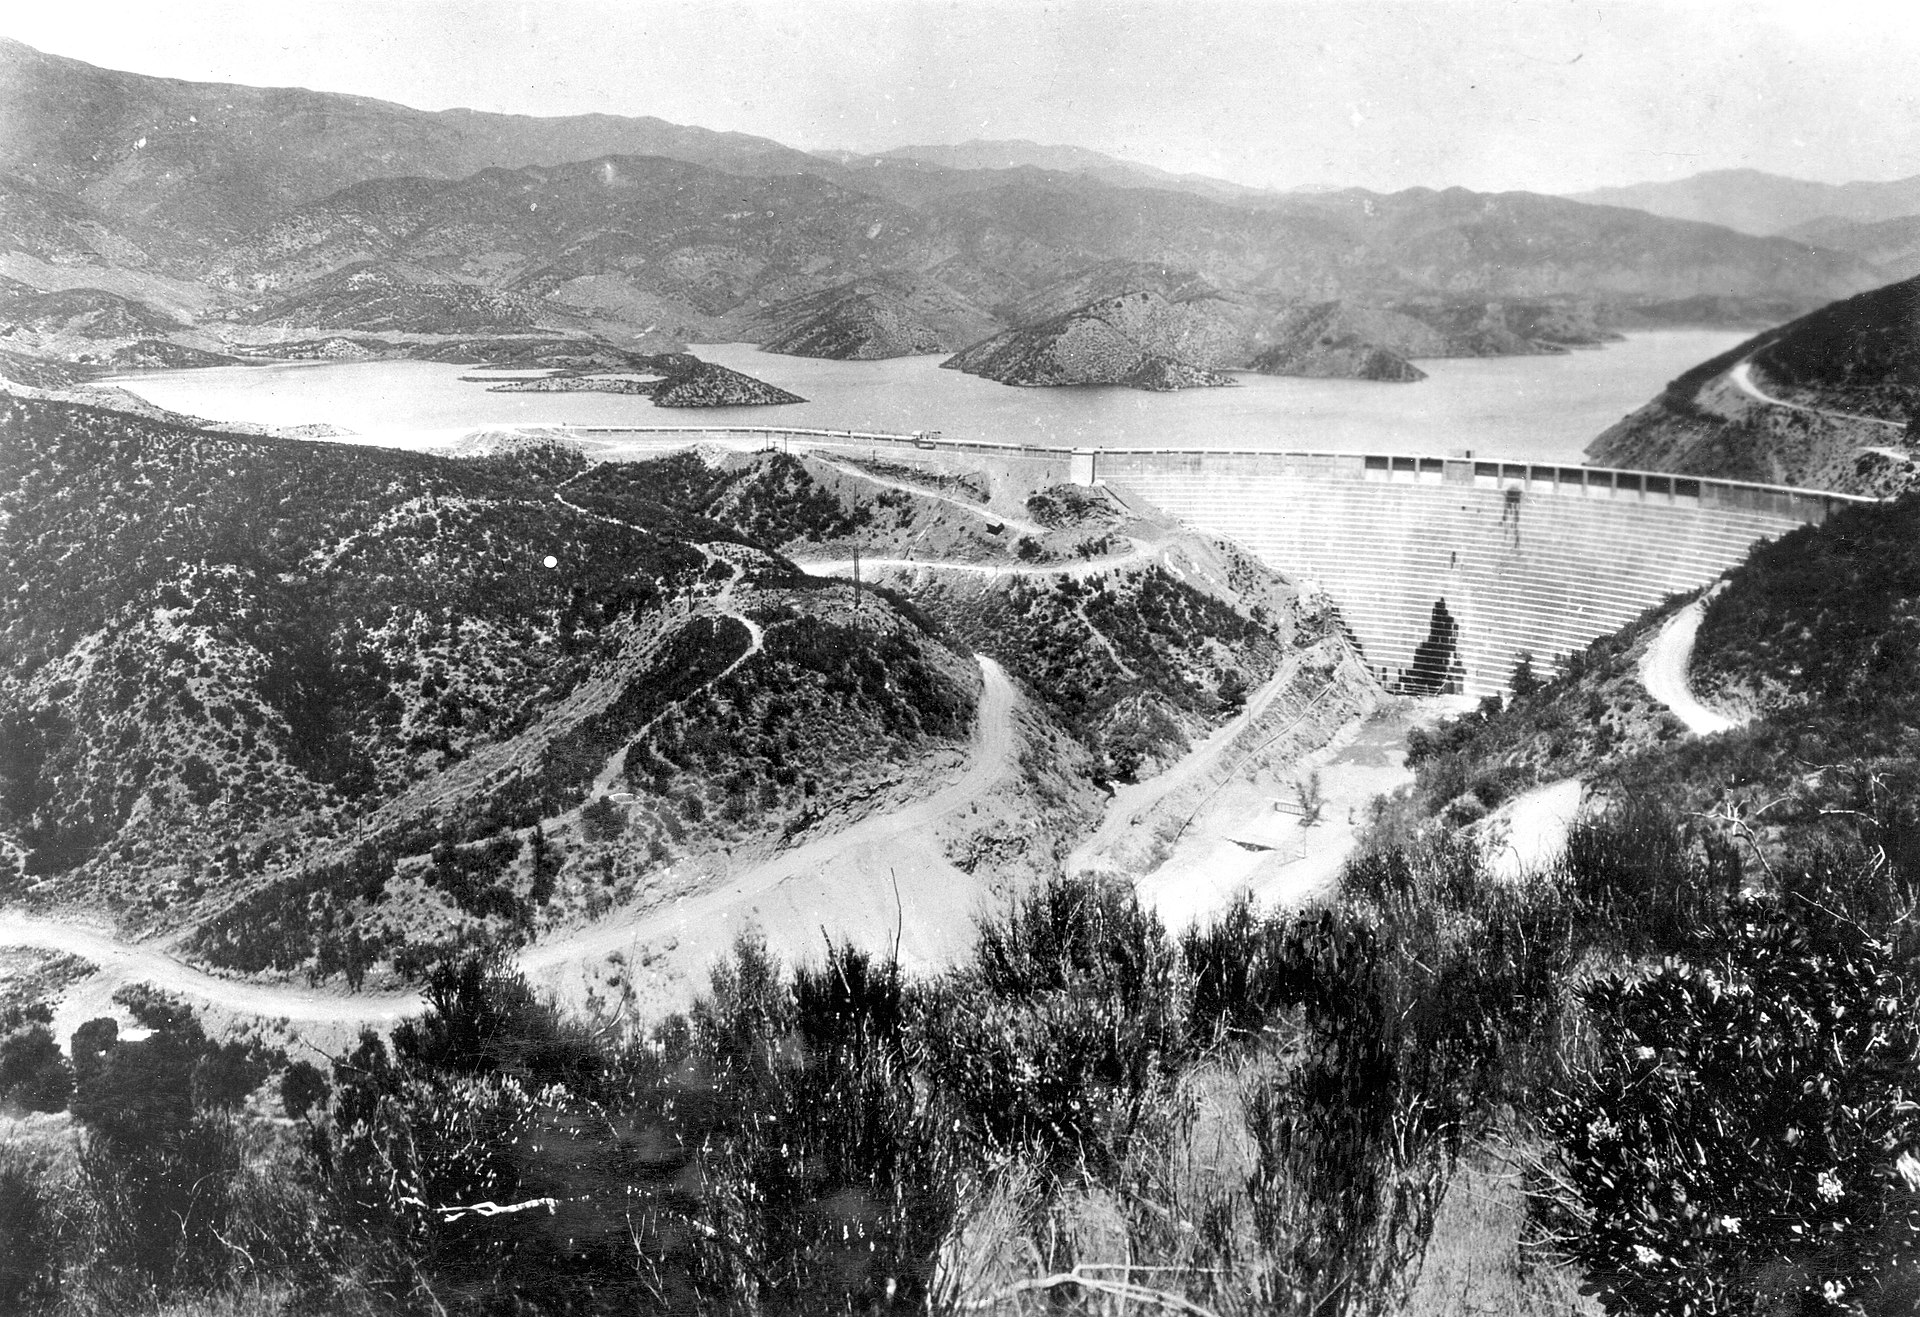 The St. Francis Dam